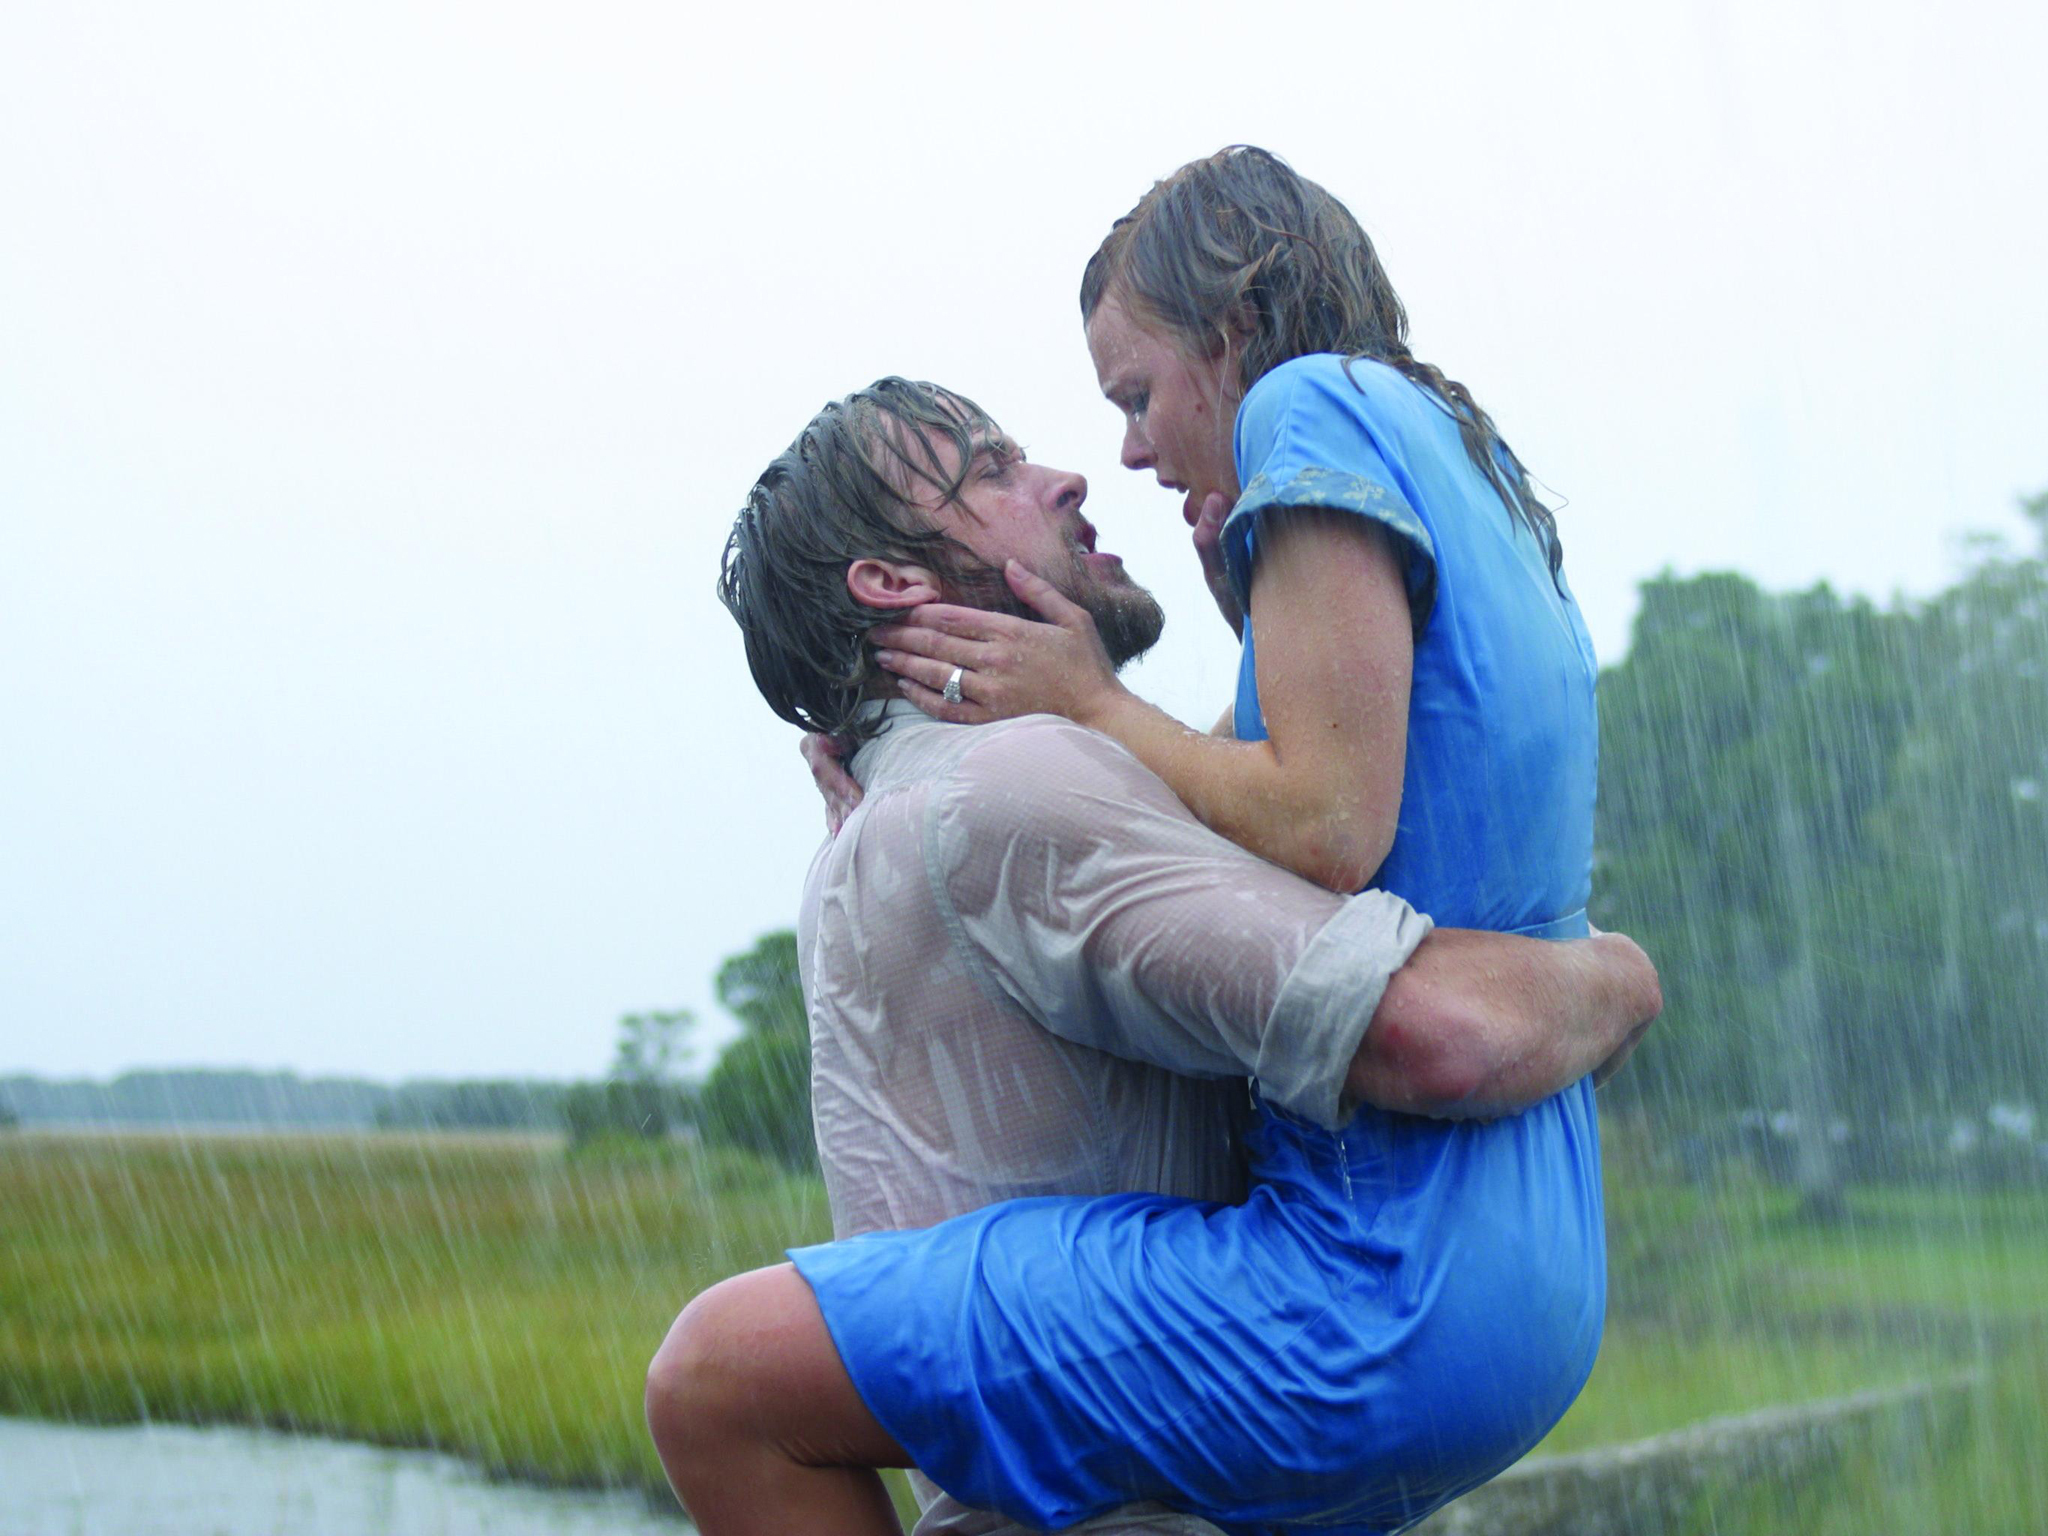 Movies to not watch during a break-up, the notebook